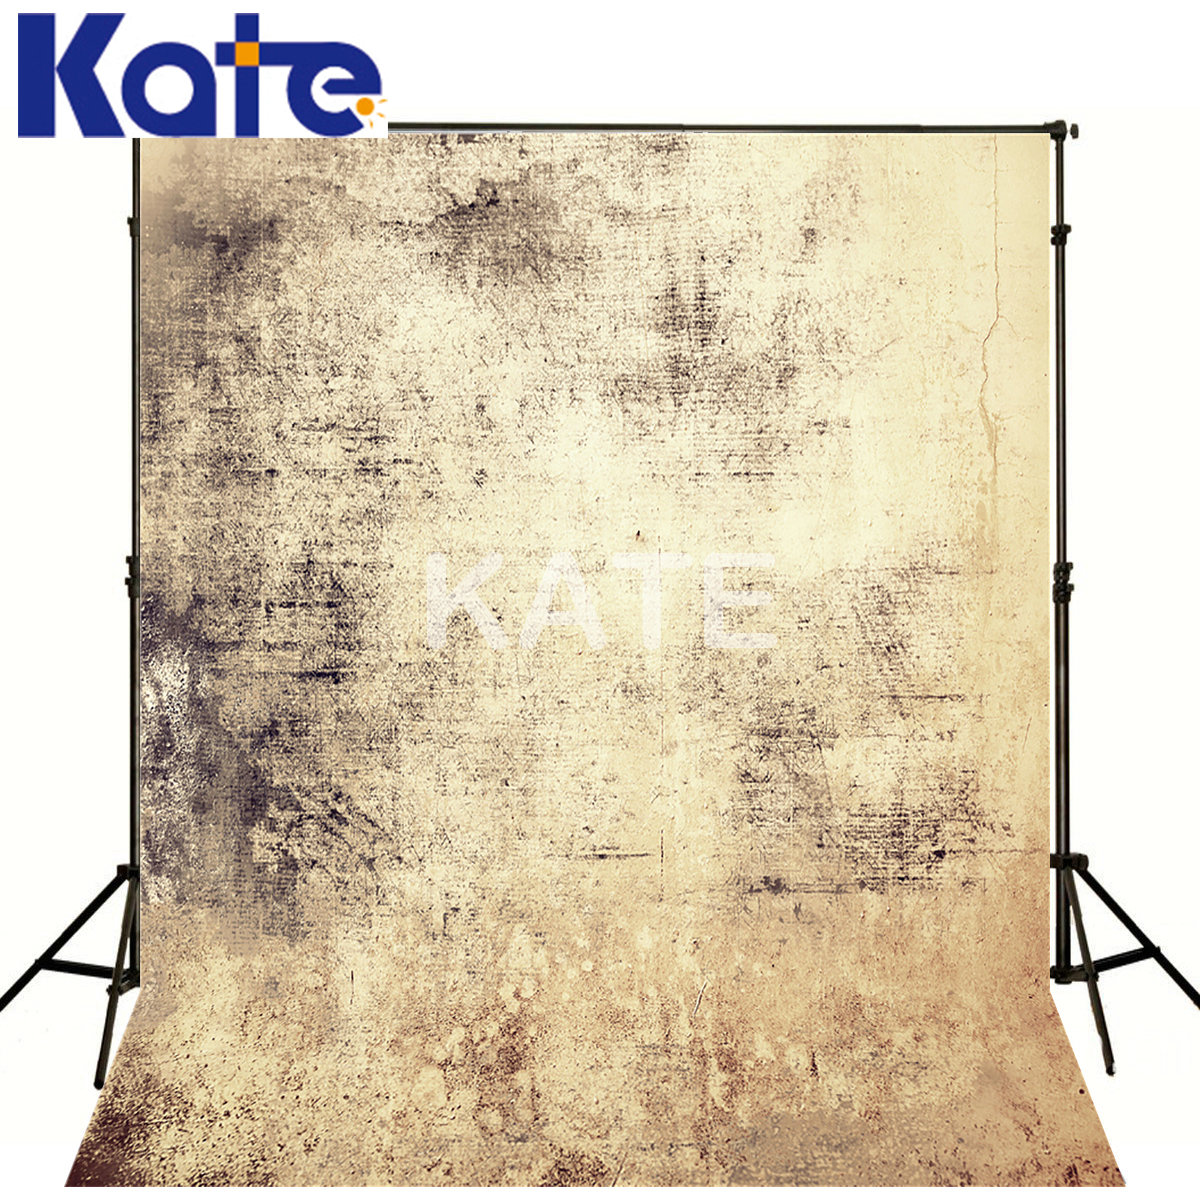 Kate Photo-Backdrop Floral Backgrounds Retro Gray Backdrop Kate Background Backdrop Photo Studio Props Baby photo